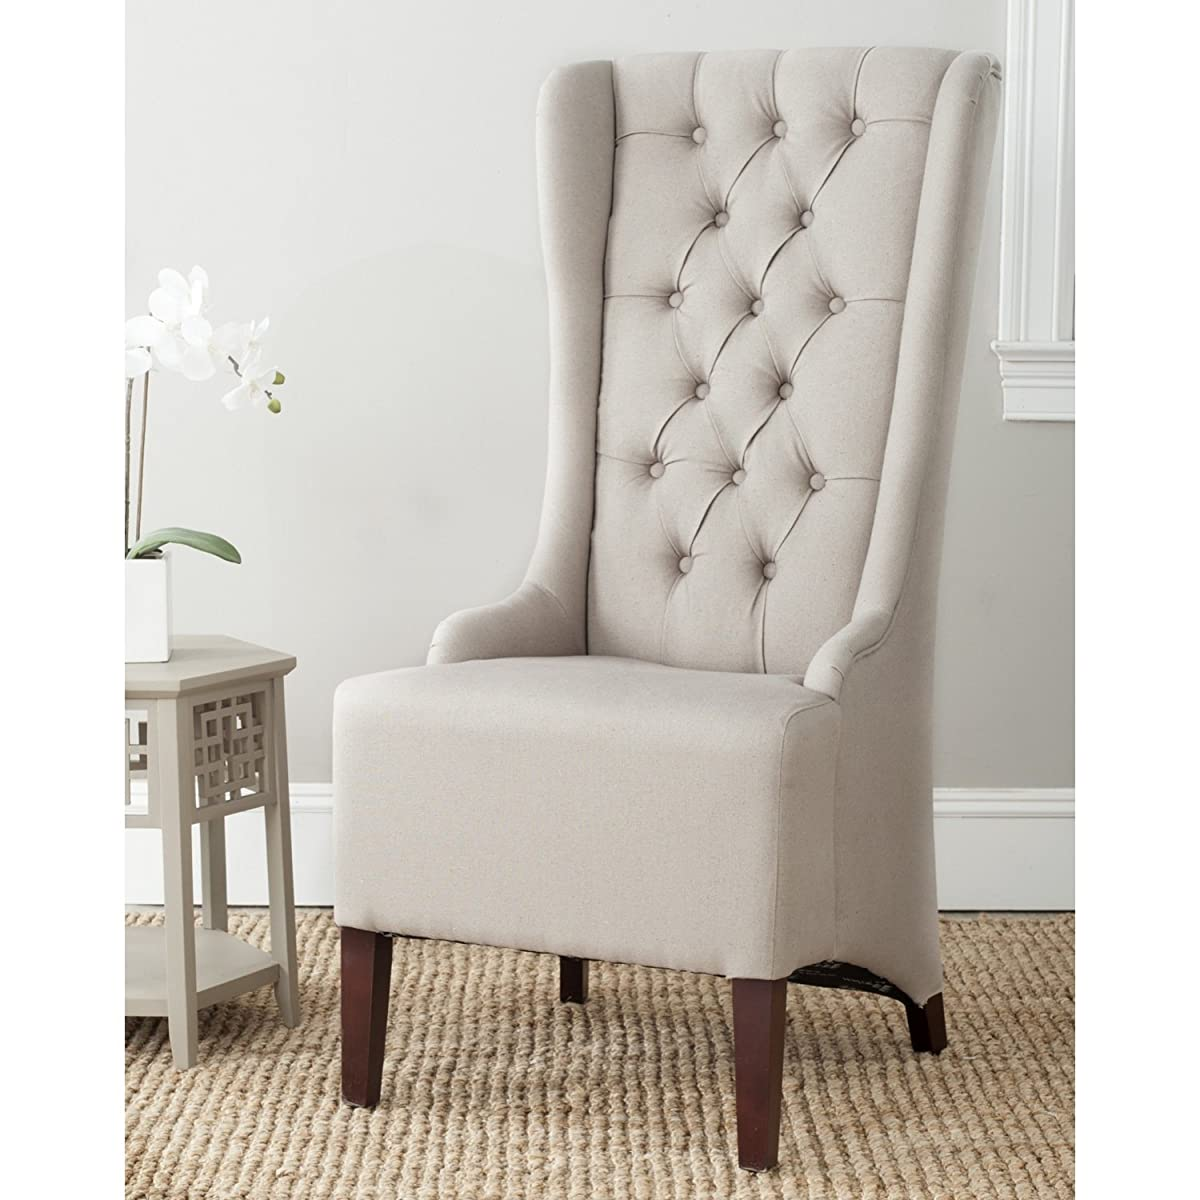 Safavieh Mercer Collection Becall Dining Chair, Taupe